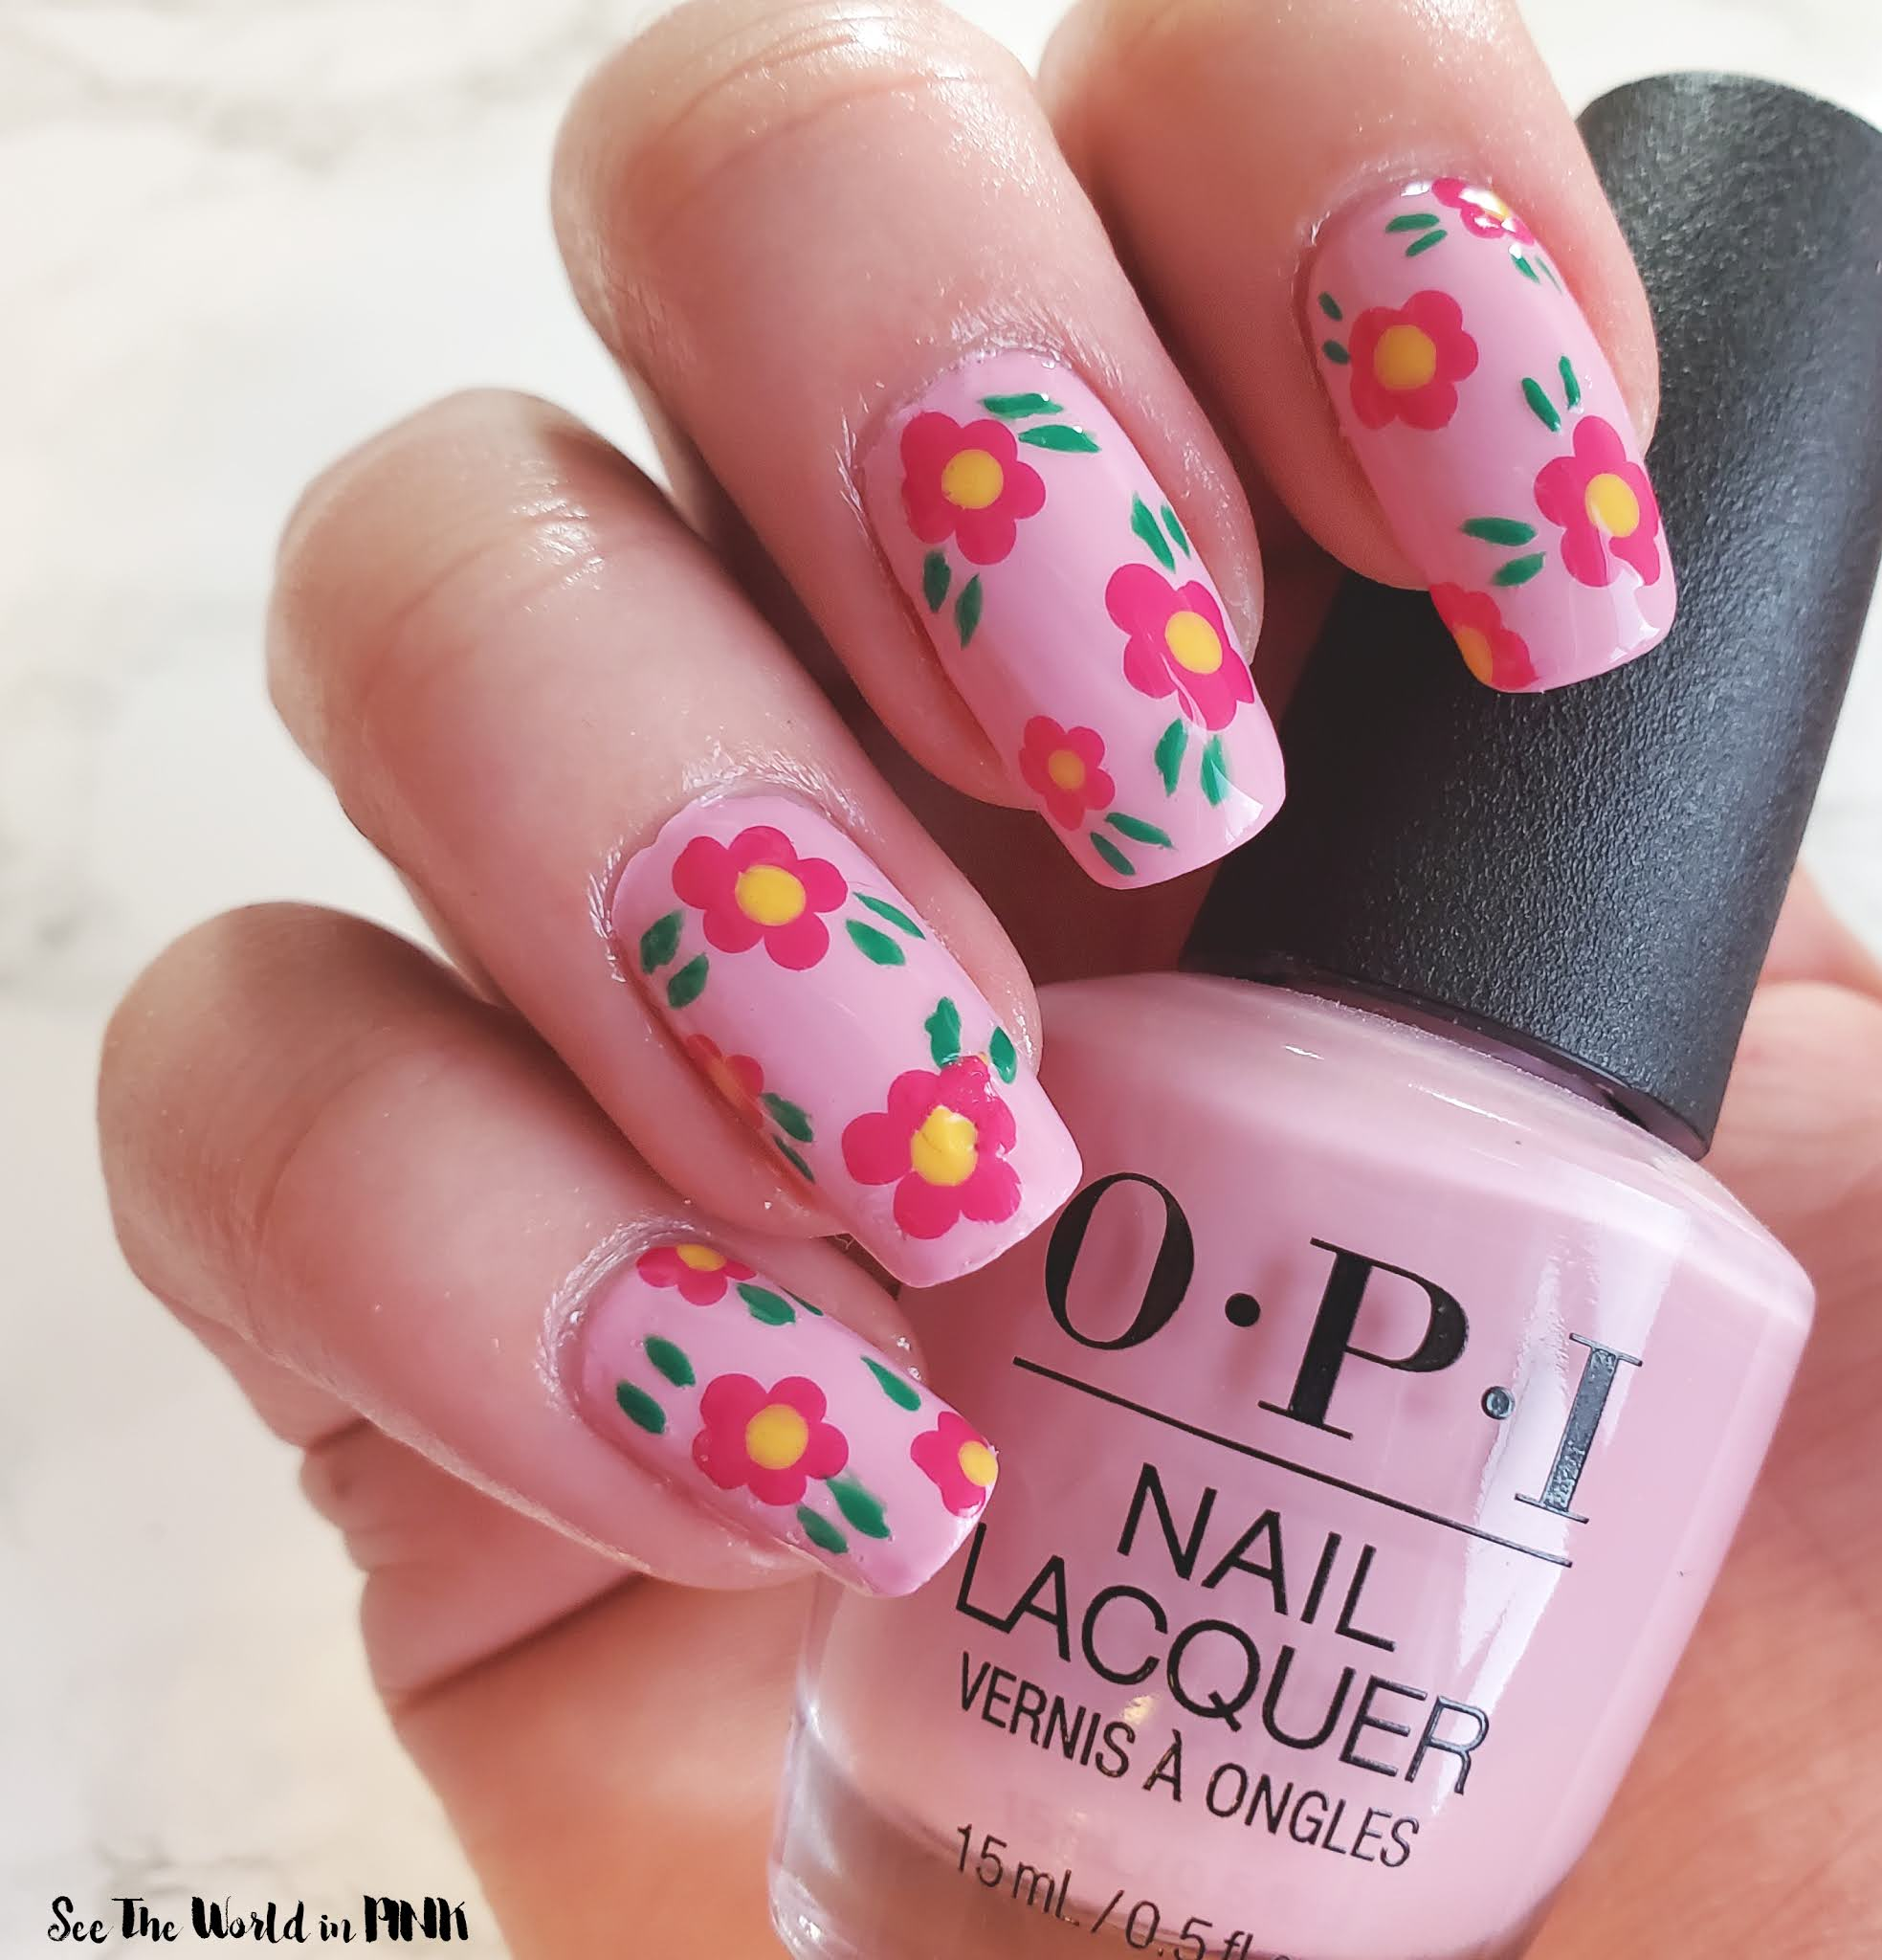 Manicure Monday - Pink Spring Dotted Floral Nail Art